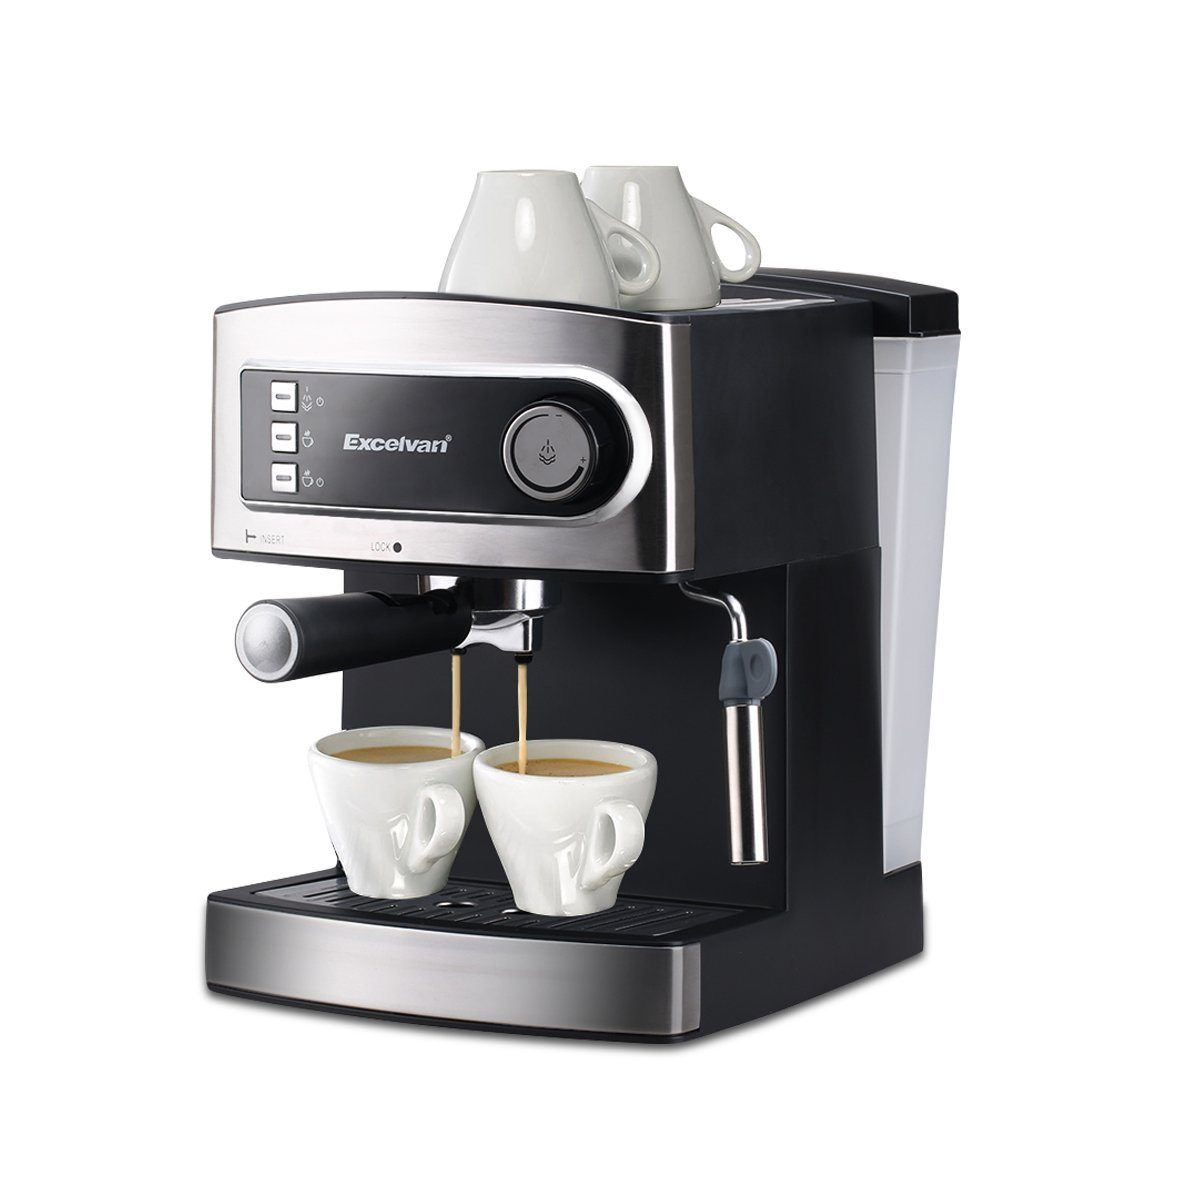 Excelvan Italian Style Coffee Machine